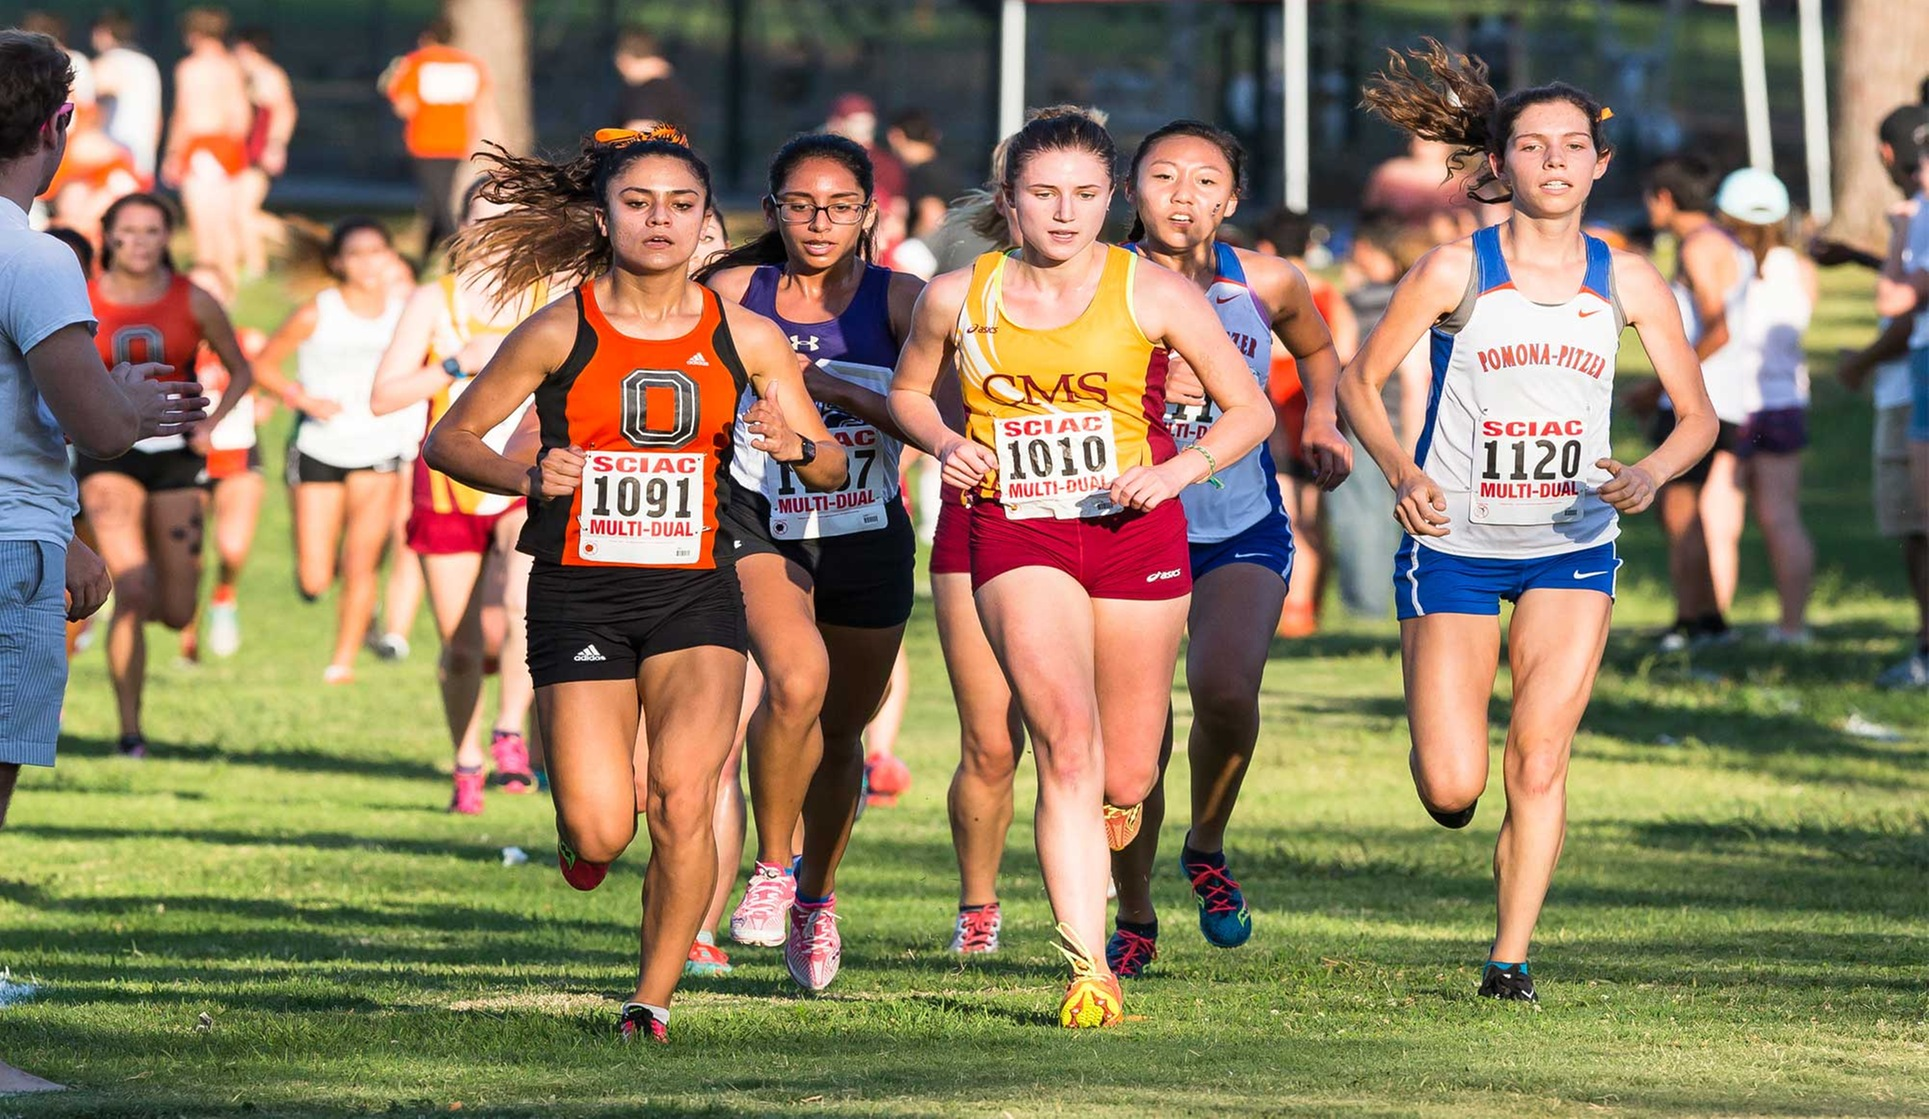 Valle, Oxy Women in 5th at West Regional